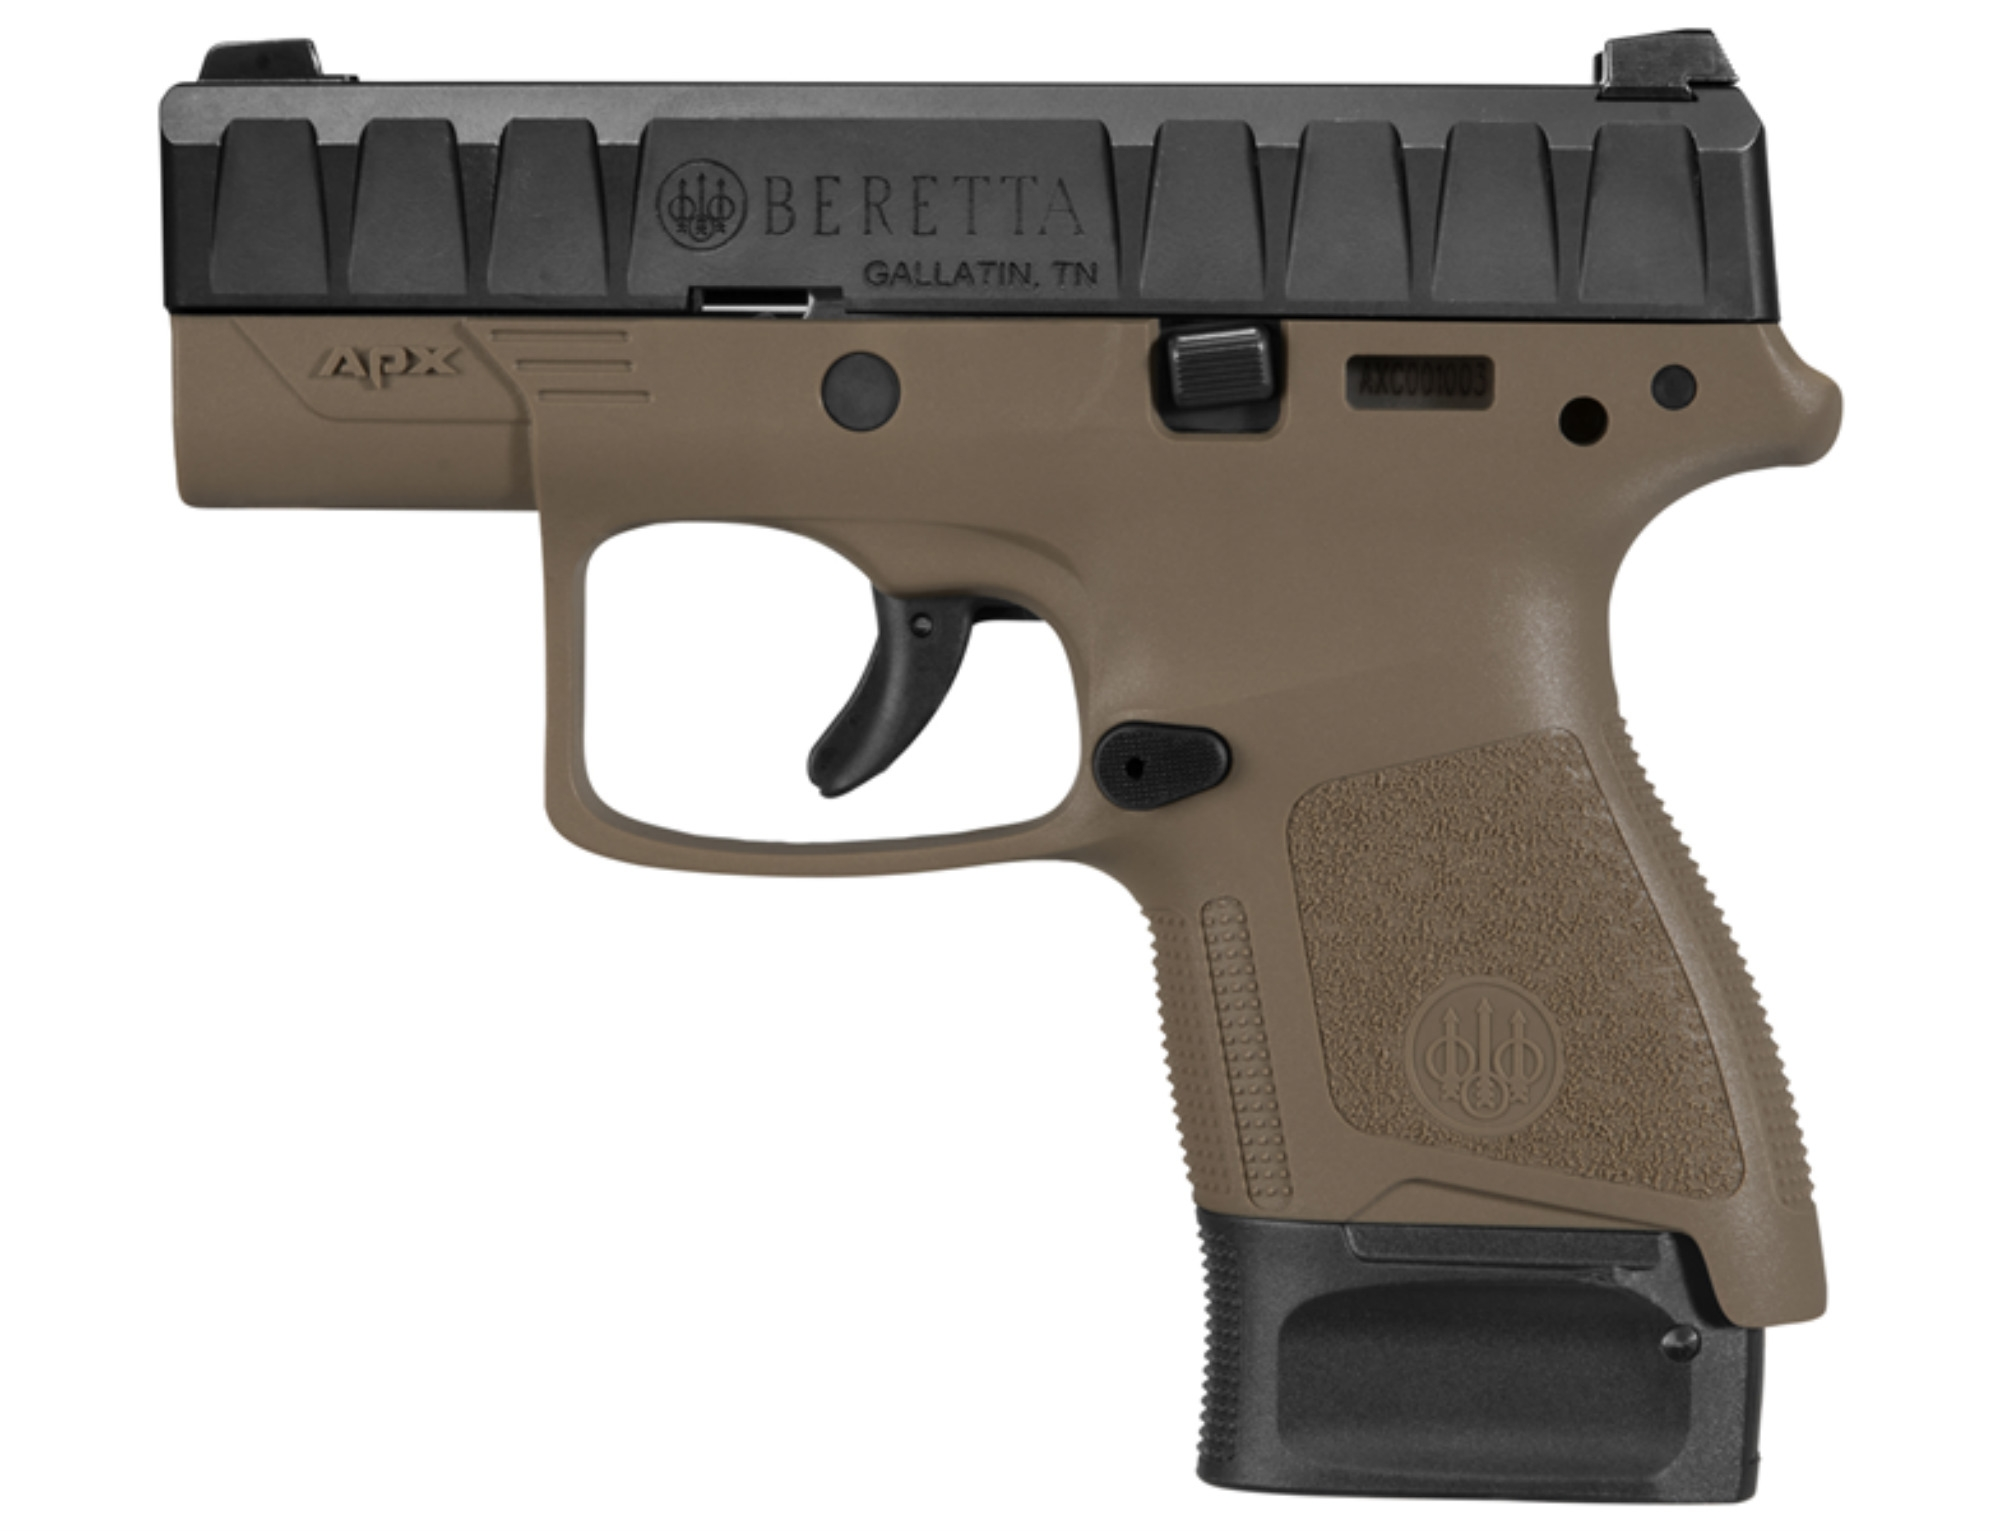 beretta: Beretta APX Carry, the new subcompact option